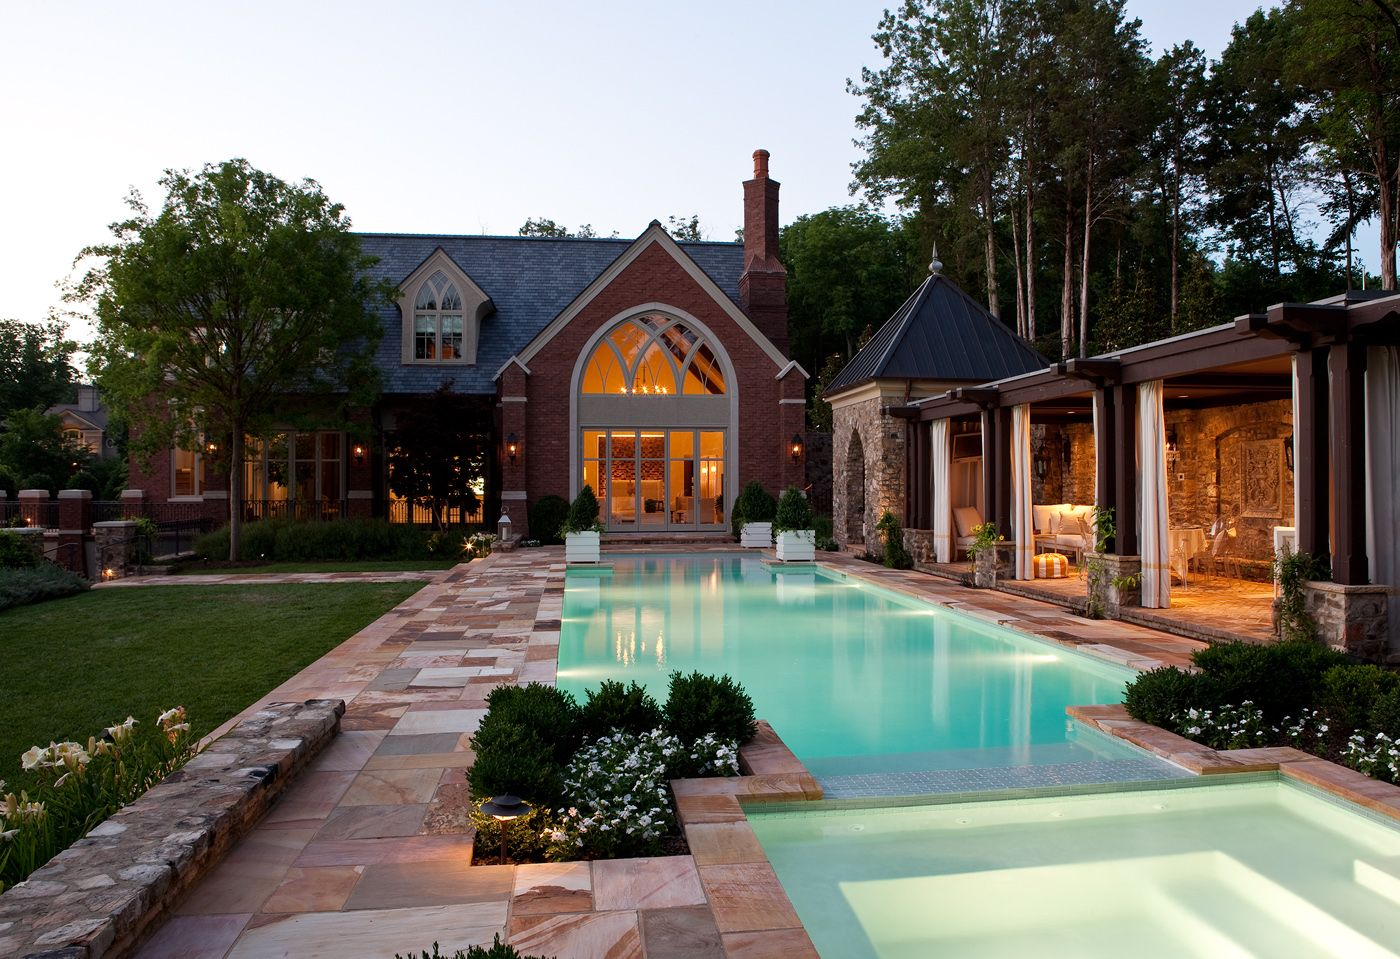 & Interior Designer Jamie Beckwithu0027s Pool House Is A Lesson In Luxury